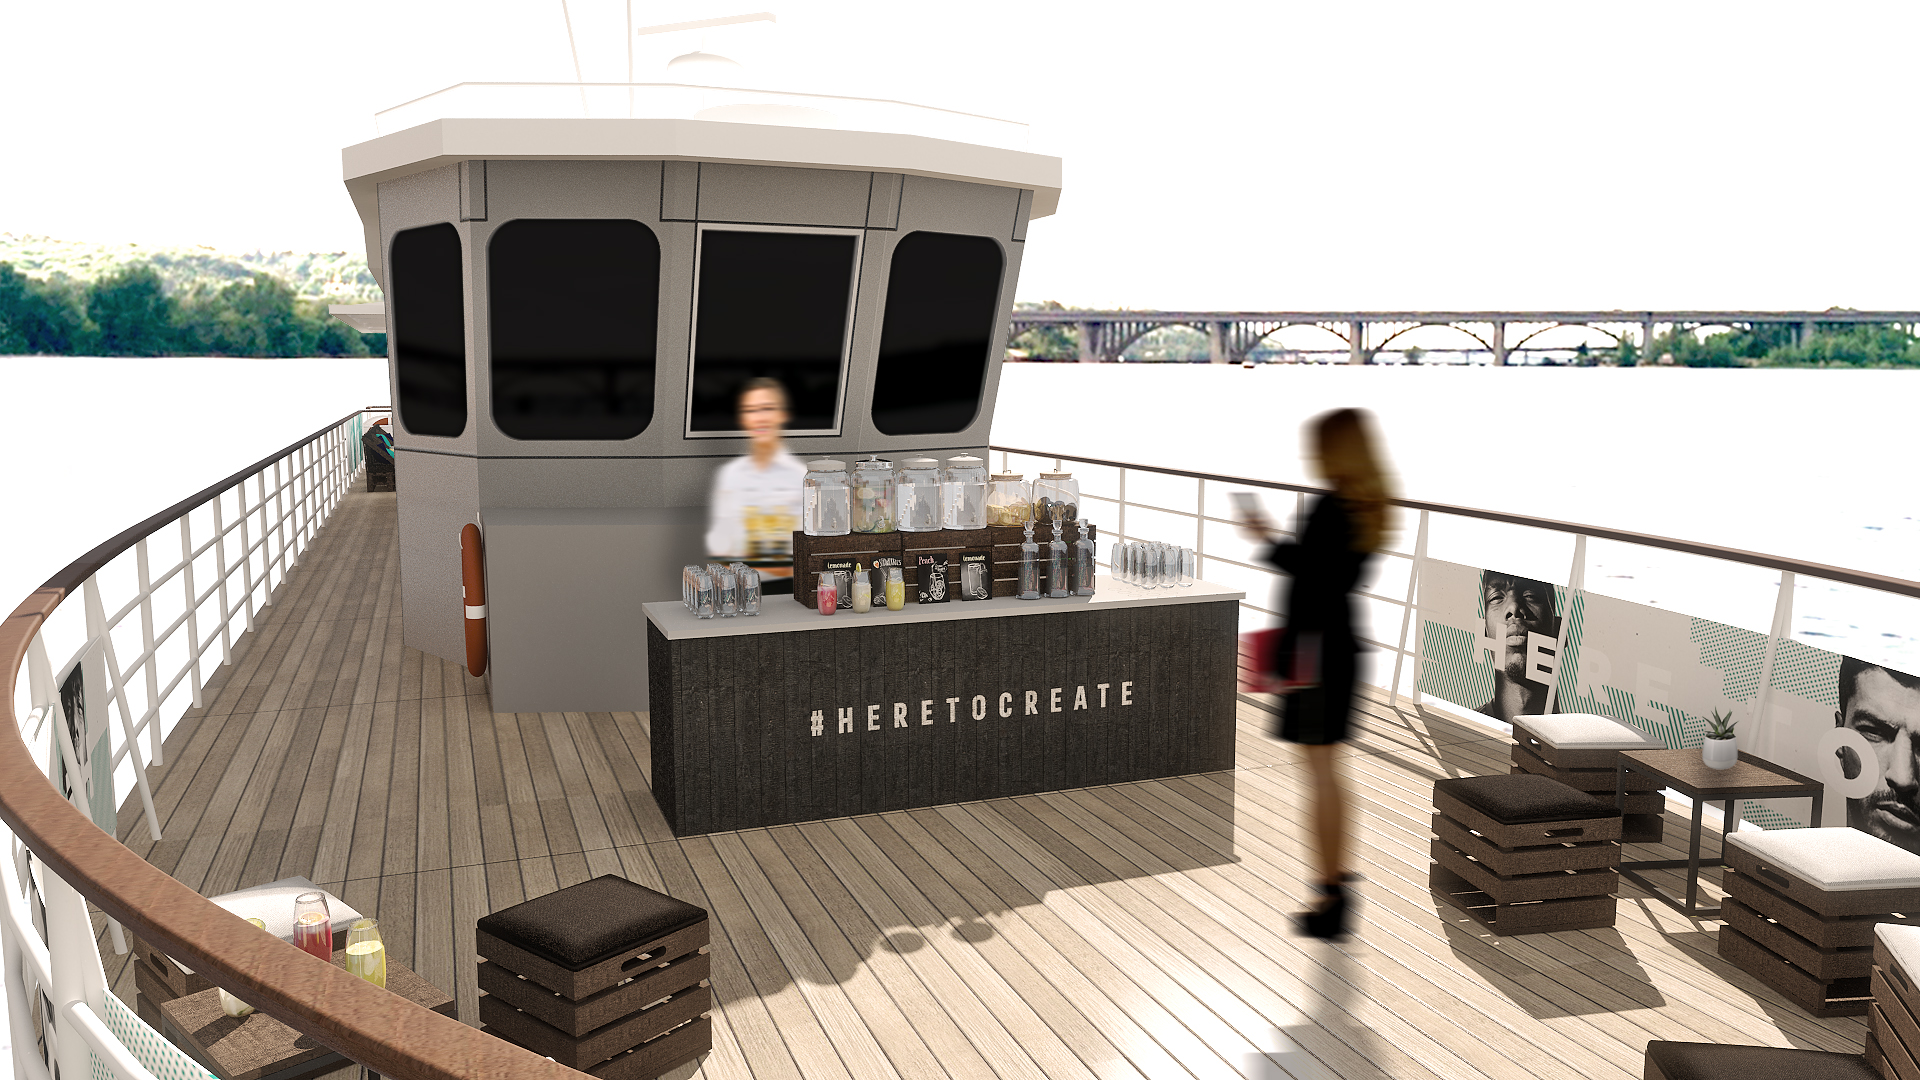 ADIDAS_UCL_Boat_02_Top Deck_Bow_People.jpg